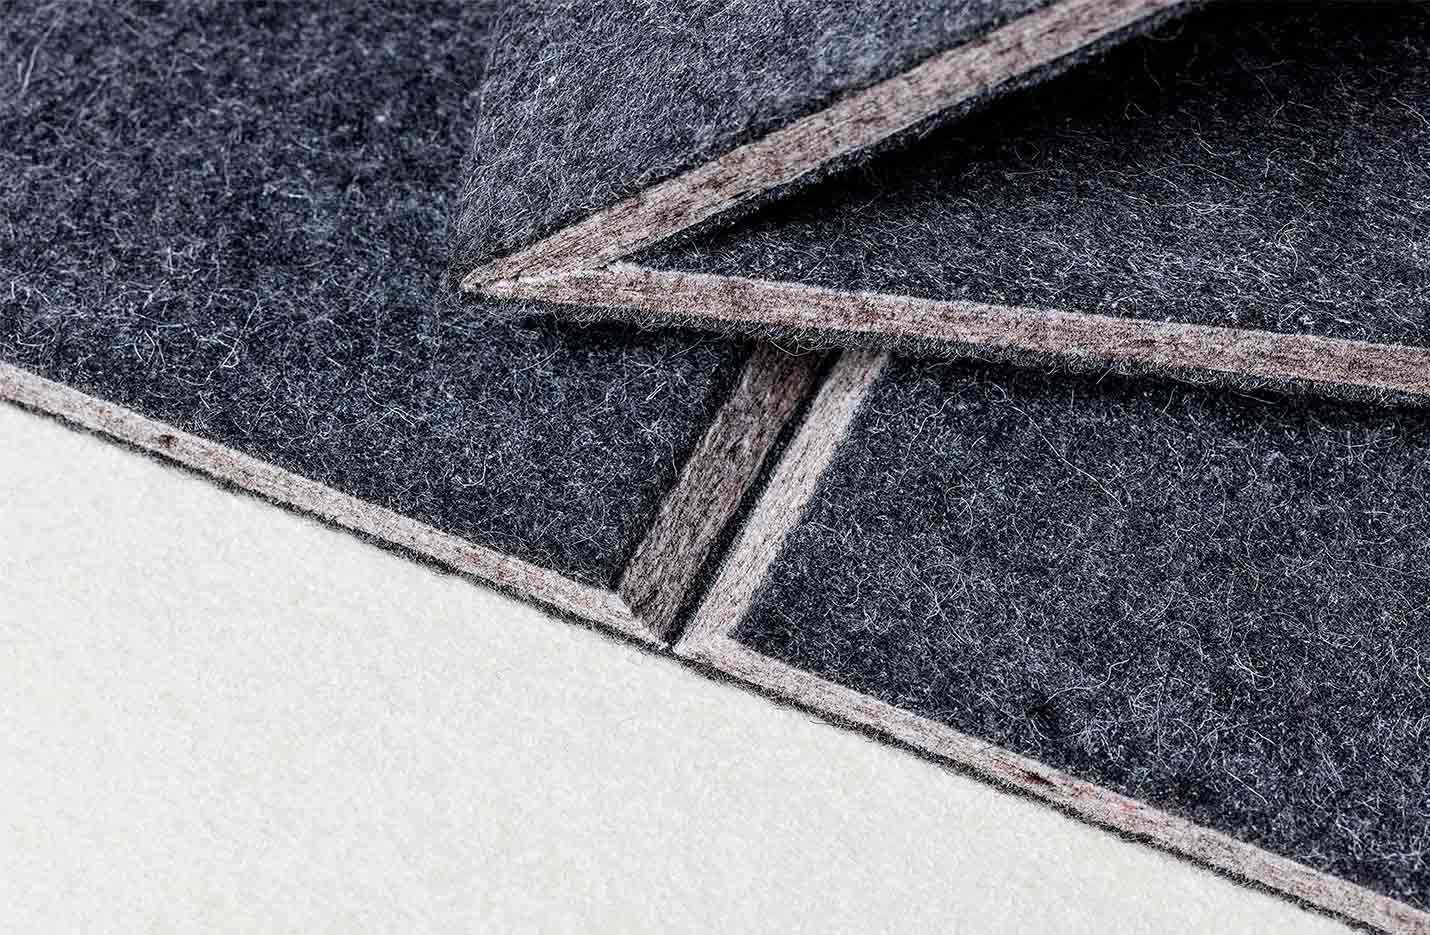 Whiperwool-Detail-Falt.jpg